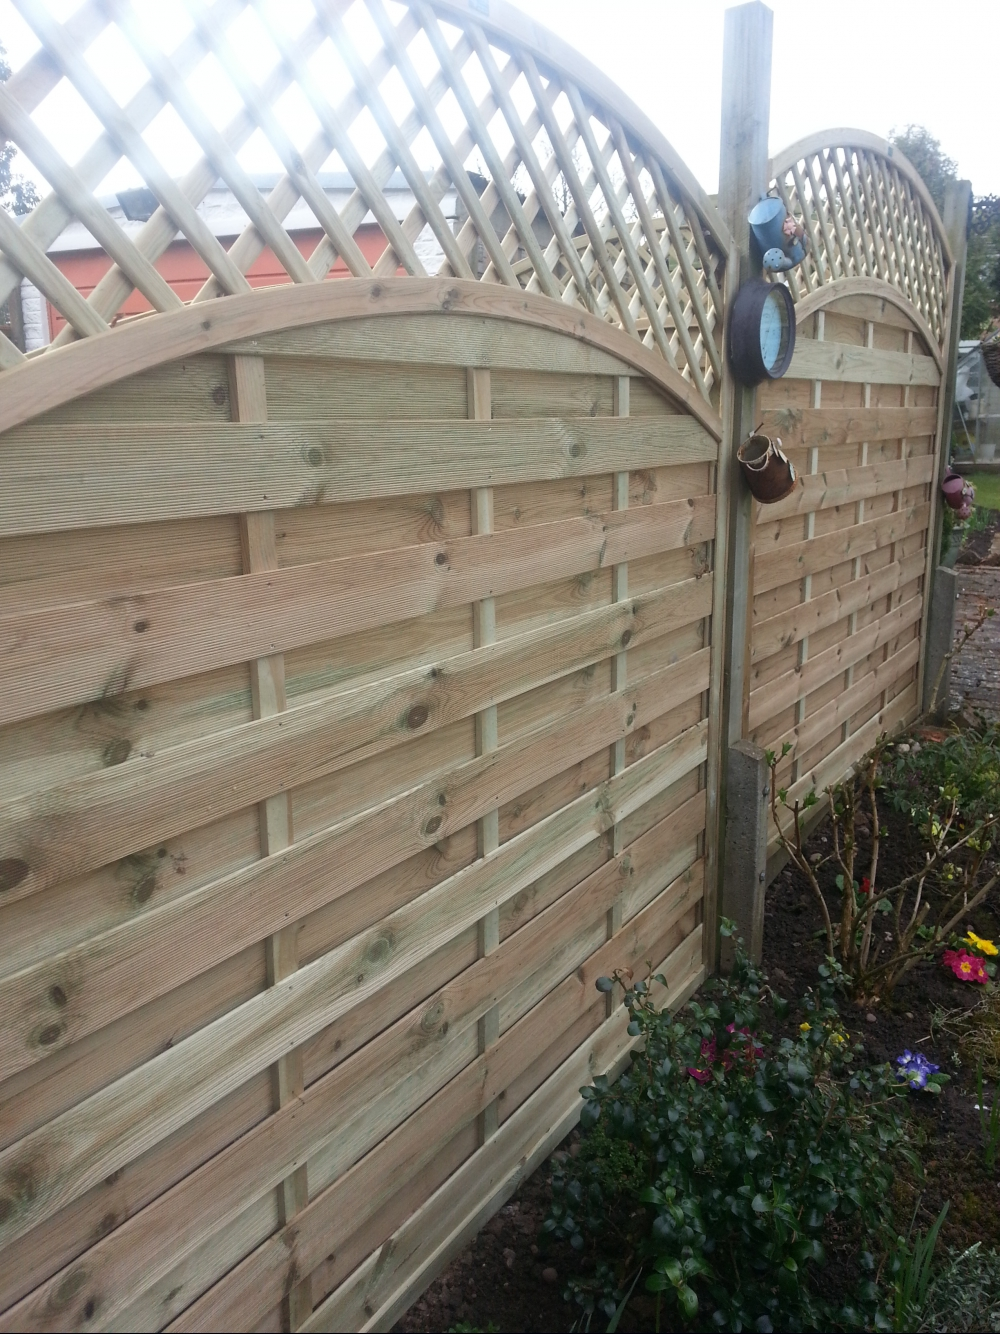 Replacement garden fencing expensive high quality fence panels baanklon Image collections